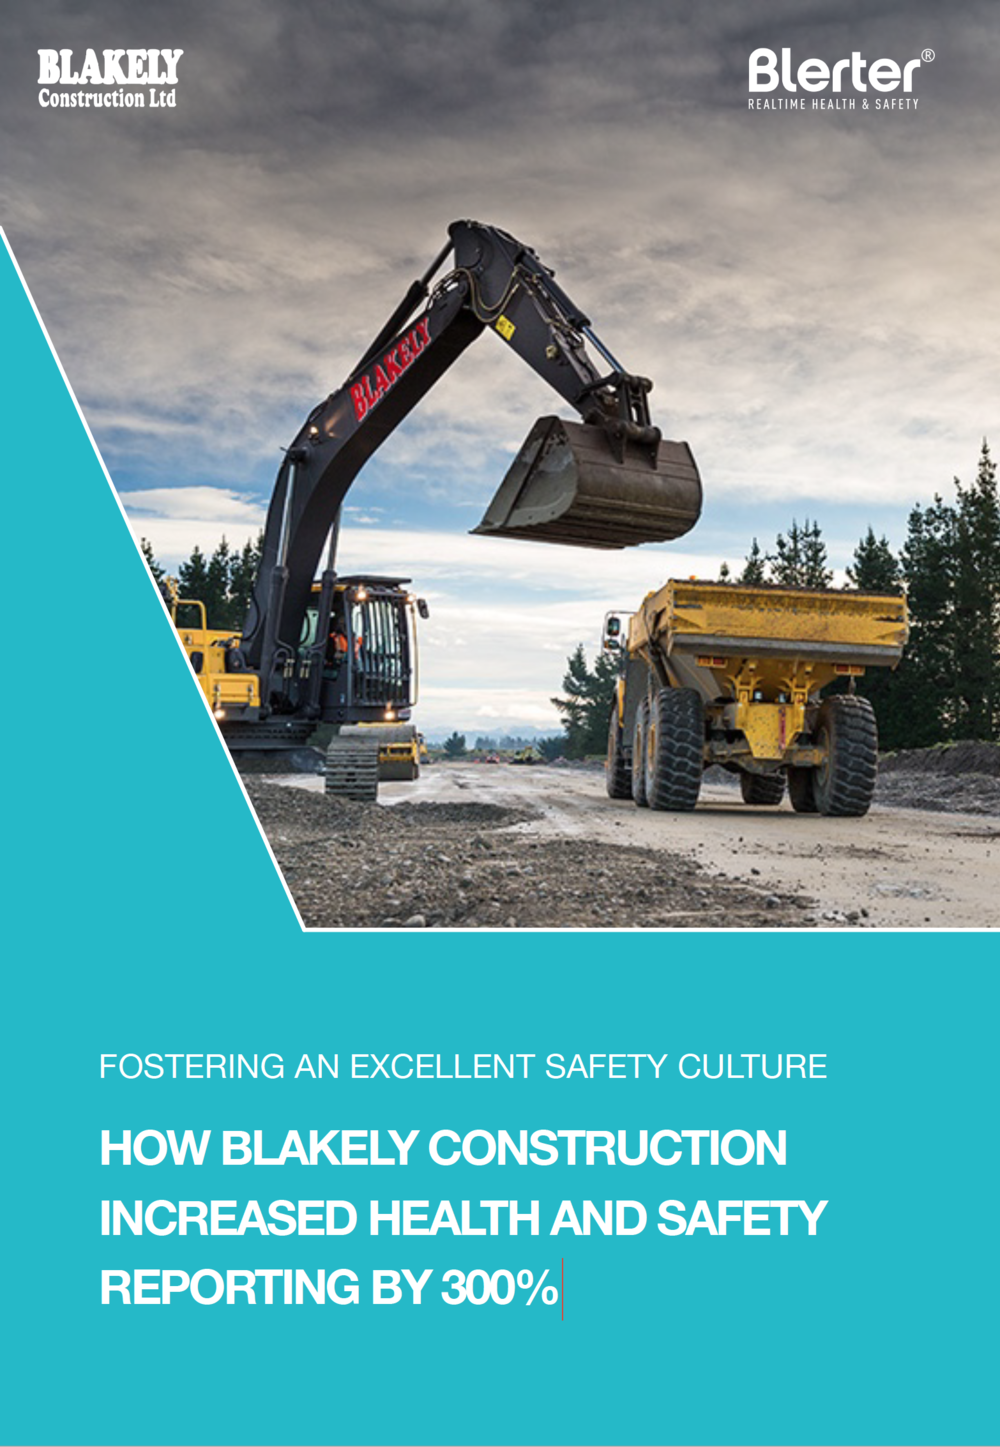 Case Study - Blakely Construciton